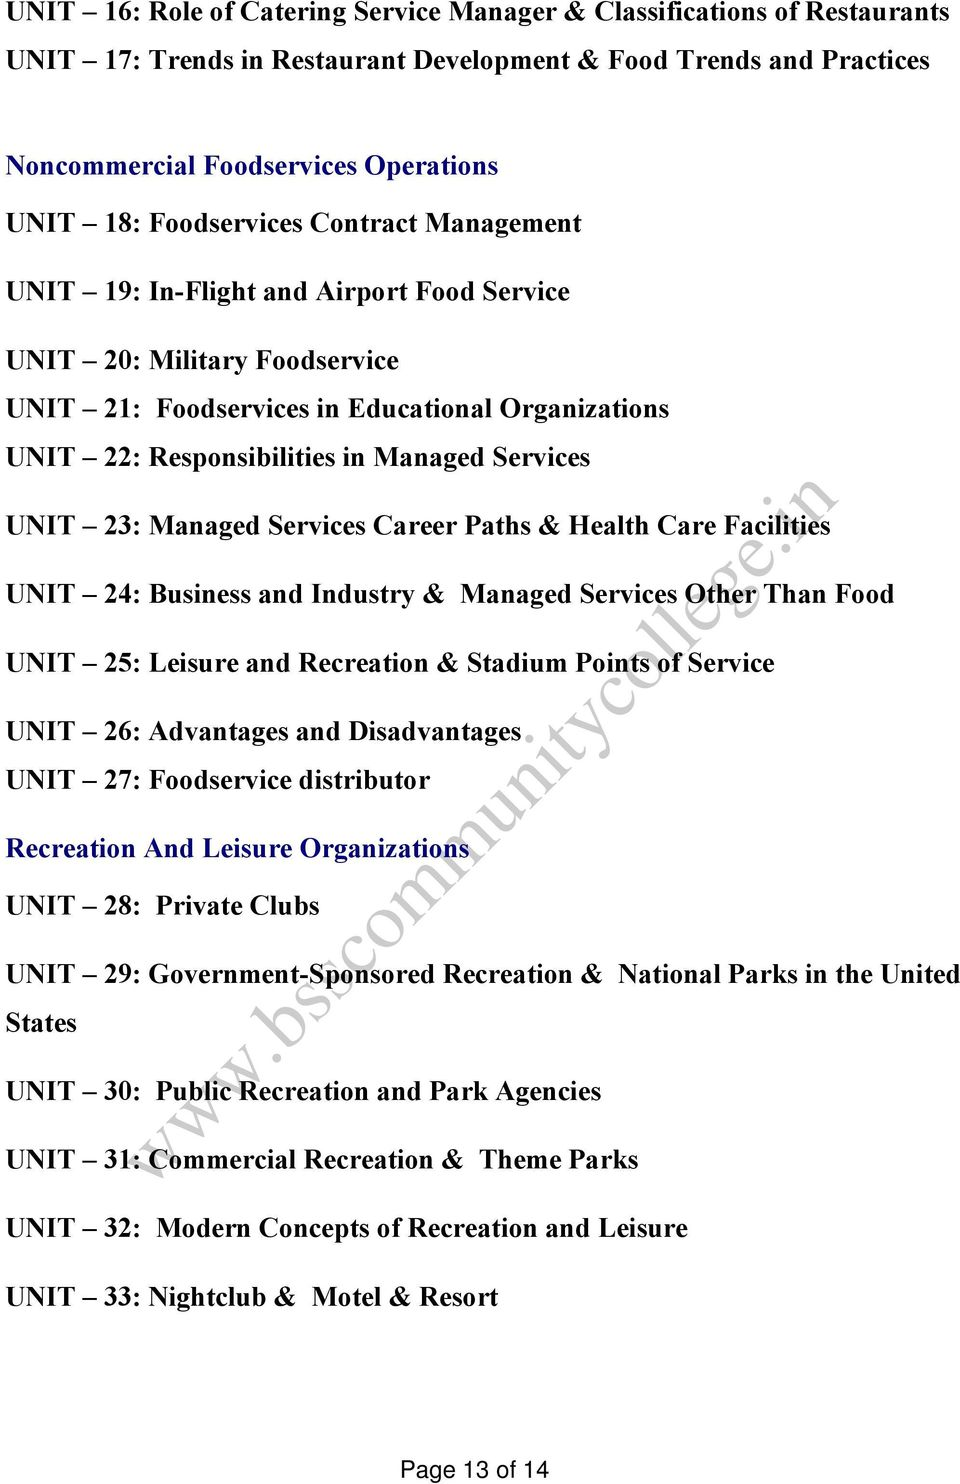 Services UNIT 23: Managed Services Career Paths & Health Care Facilities UNIT 24: Business and Industry & Managed Services Other Than Food UNIT 25: Leisure and Recreation & Stadium Points of Service